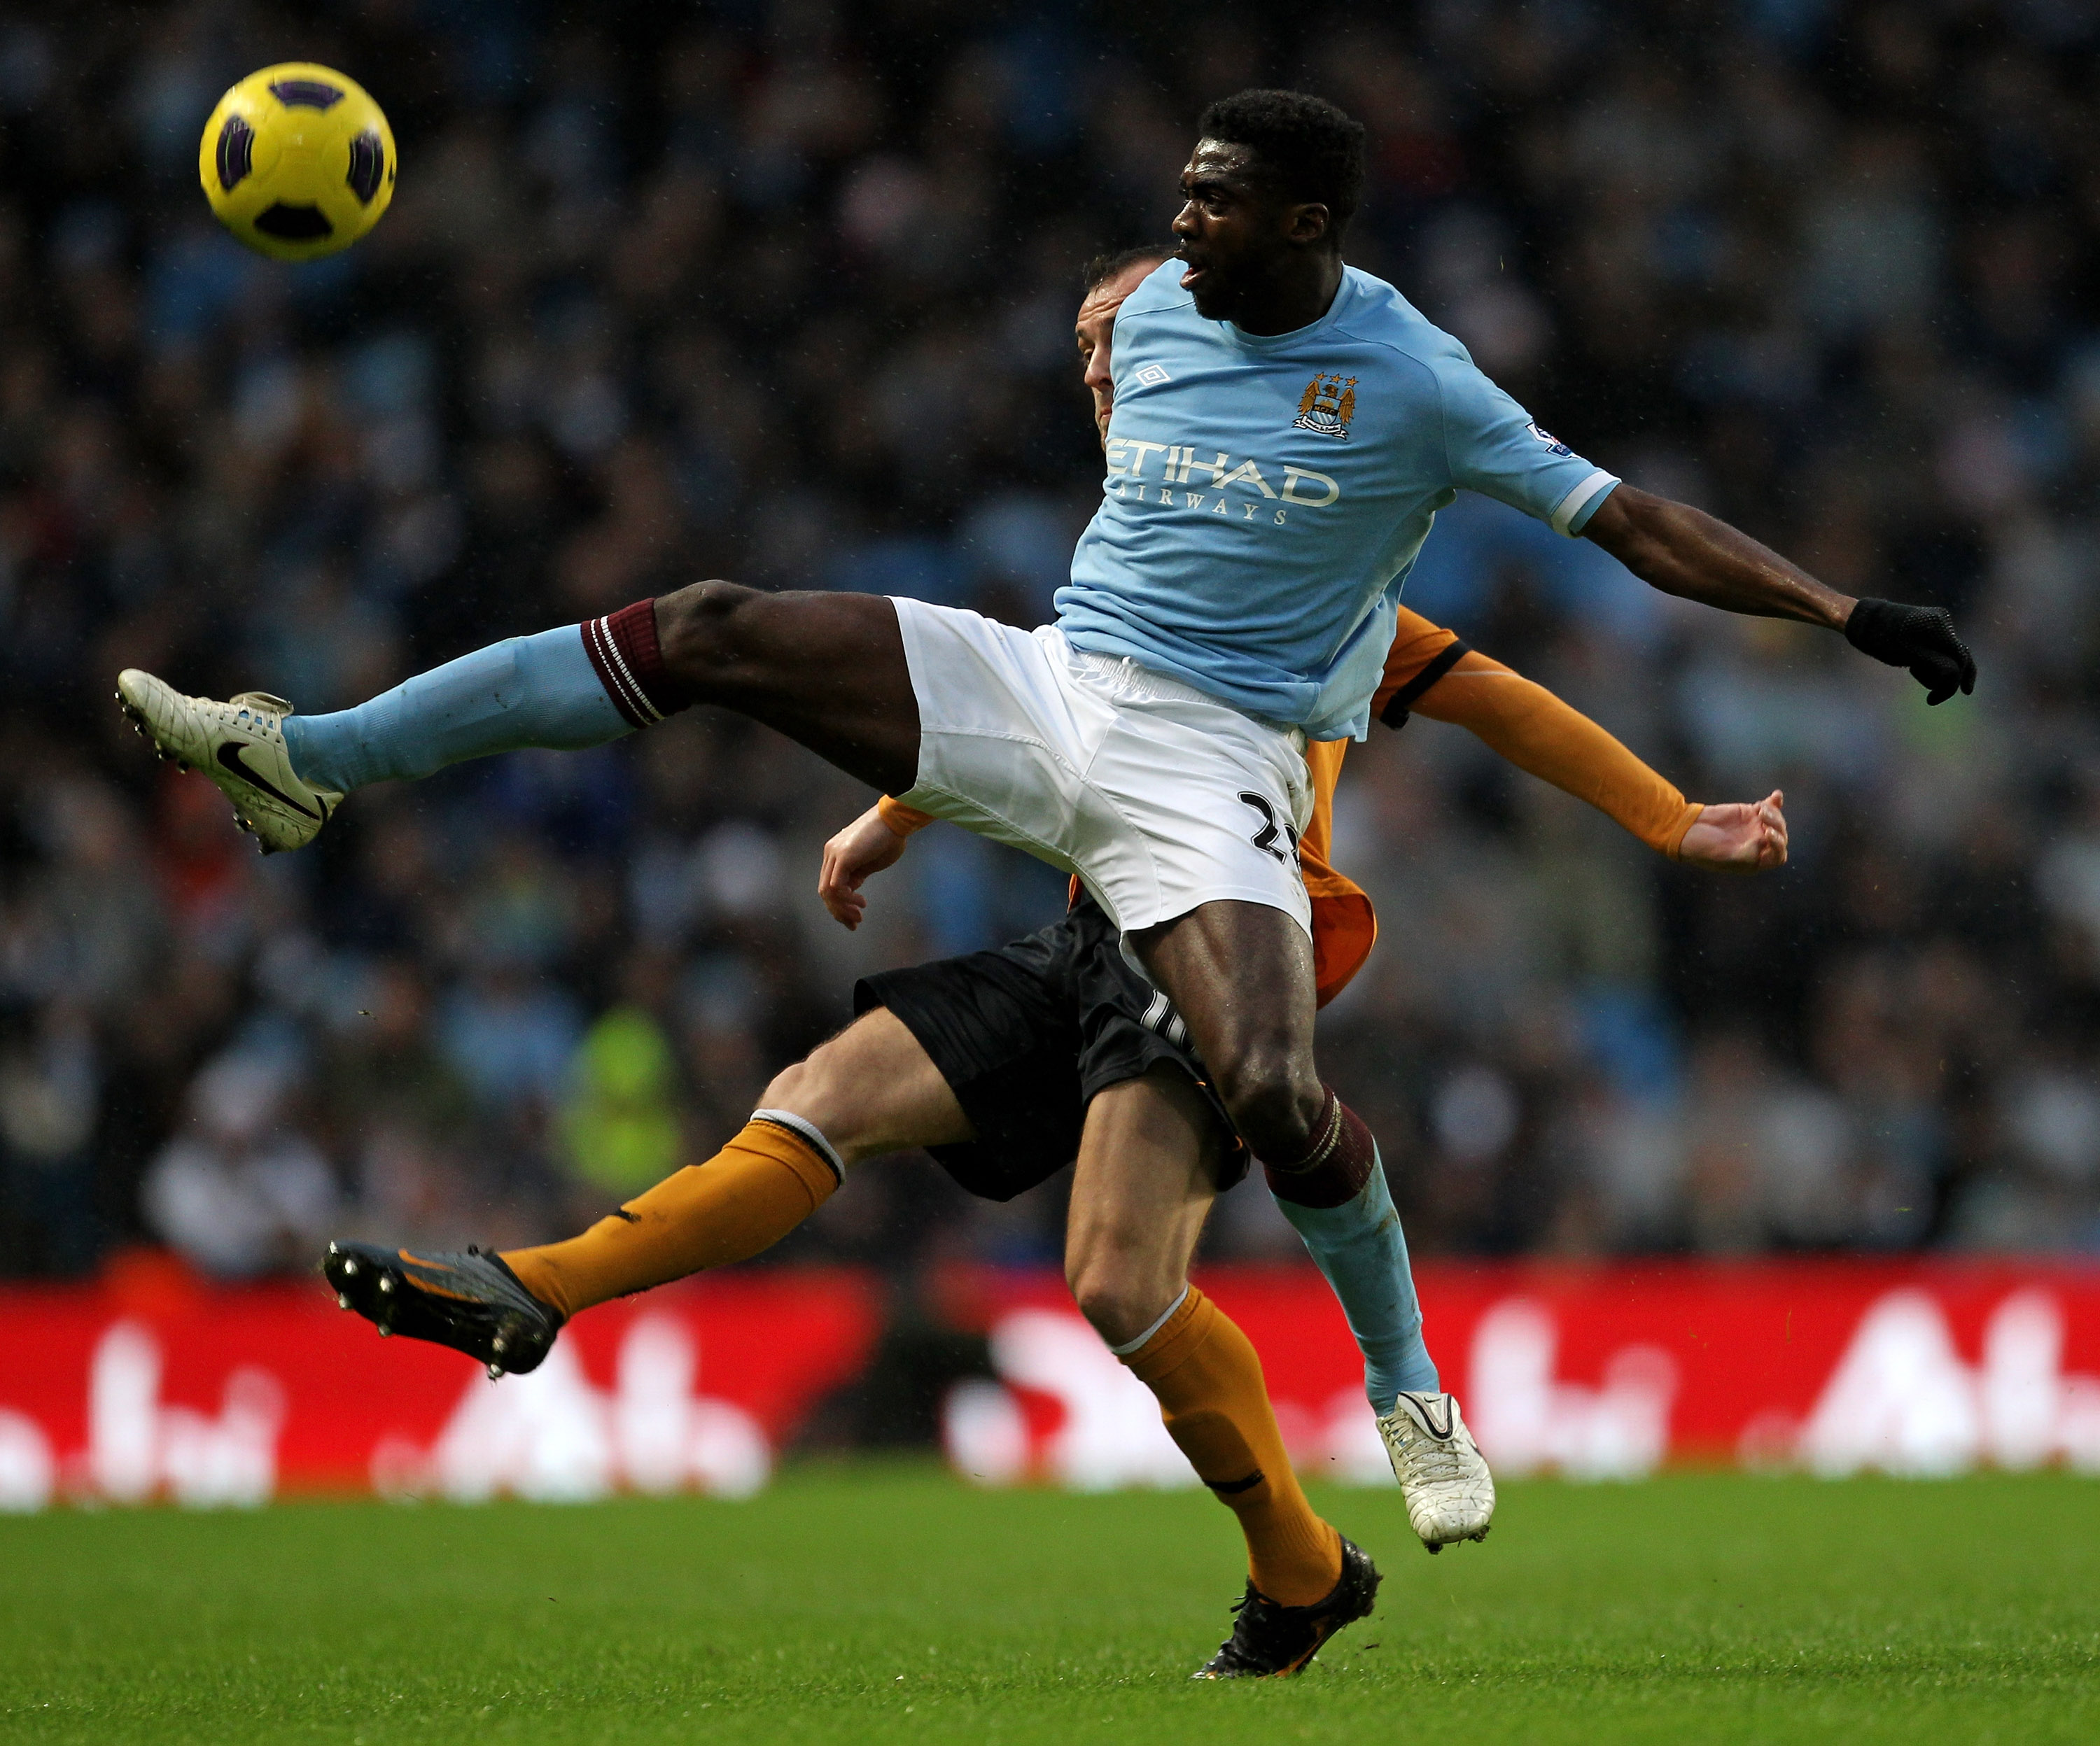 MANCHESTER, UNITED KINGDOM - JANUARY 15:   Steven Fletcher of Wolverhampton Wanderers competes with Kolo Toure of Manchester City during the Barclays Premier League match between Manchester City and Wolverhampton Wanderers at the City of Manchester Stadiu